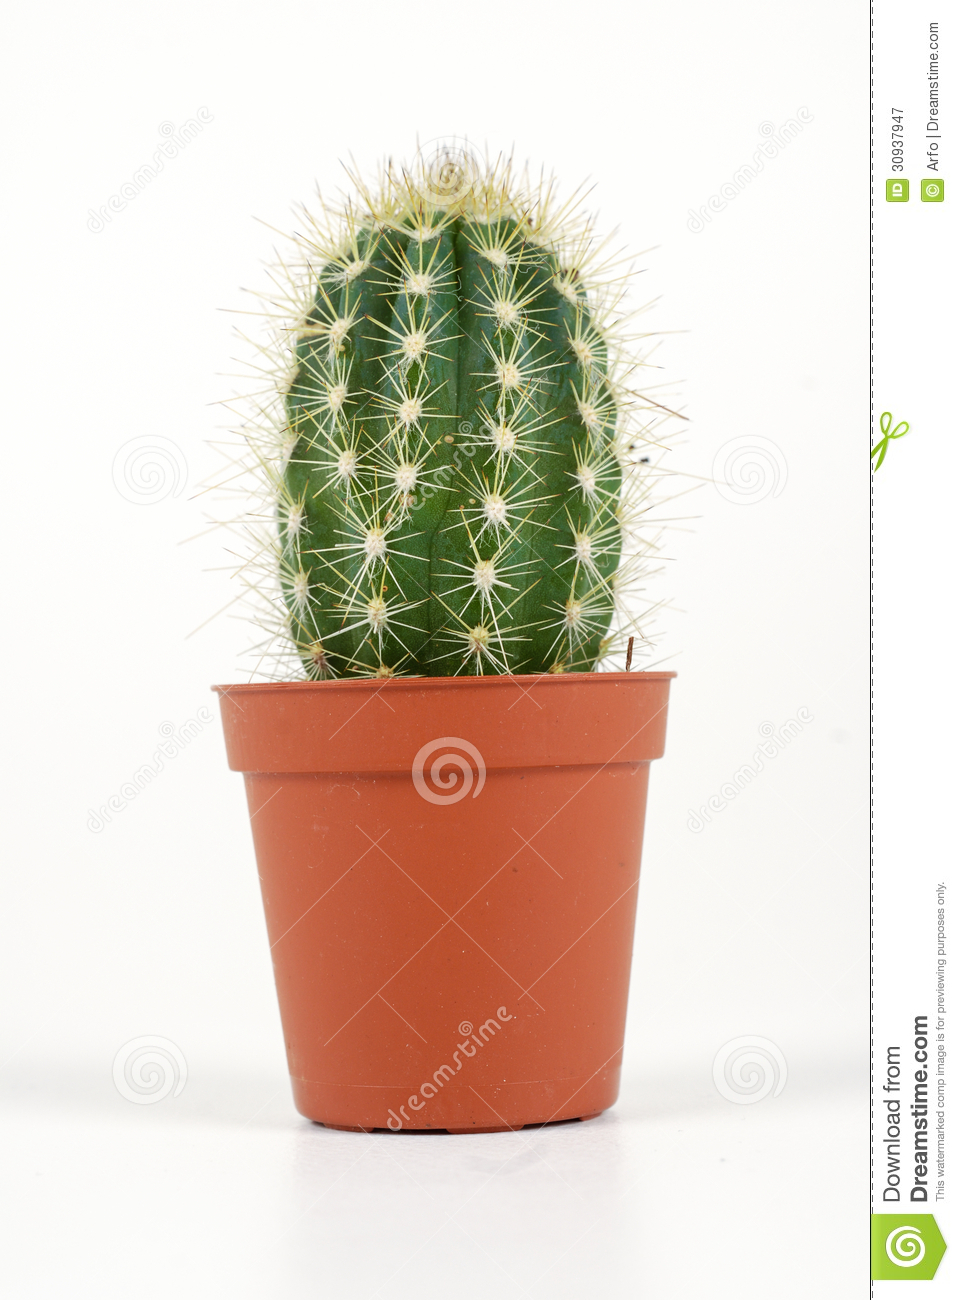 cactus in a pot stock image image of close up growing 30937947. Black Bedroom Furniture Sets. Home Design Ideas